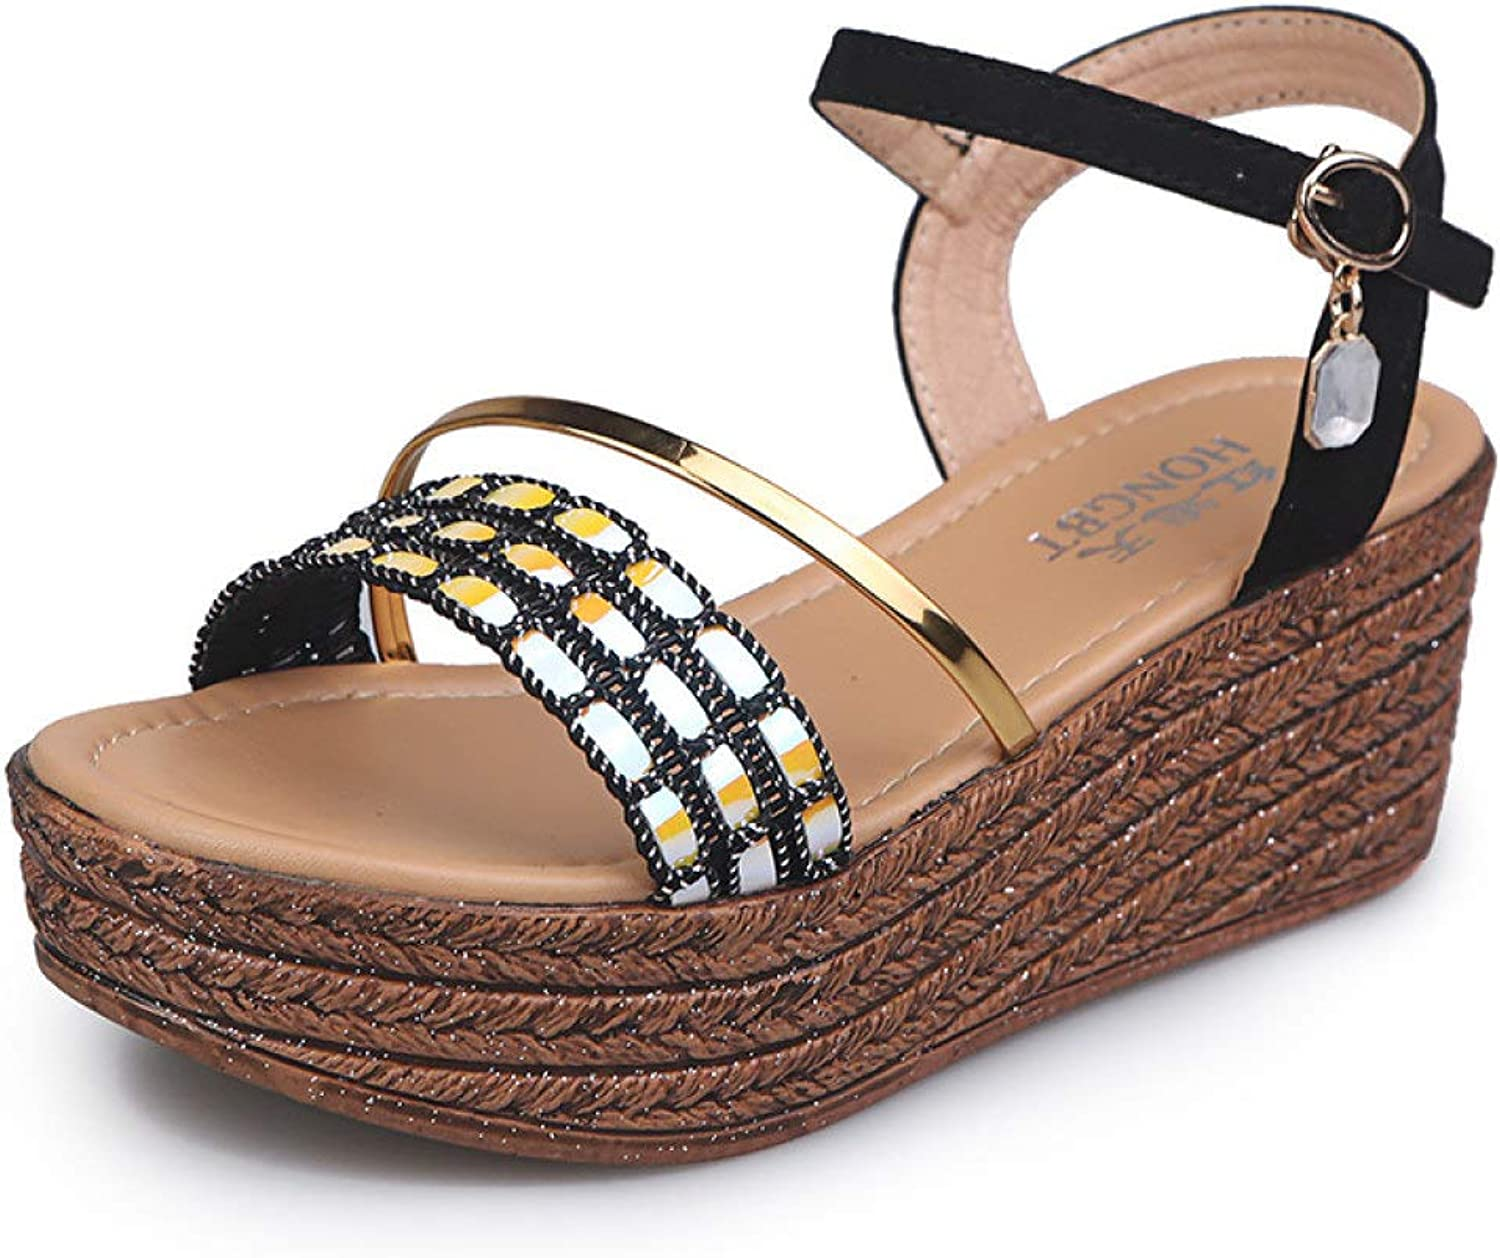 T-JULY Women Sandals Ankle Strap Casual Platform Wedges High Heel Footwear Mixed colors Bling Woman Summer Slingback shoes